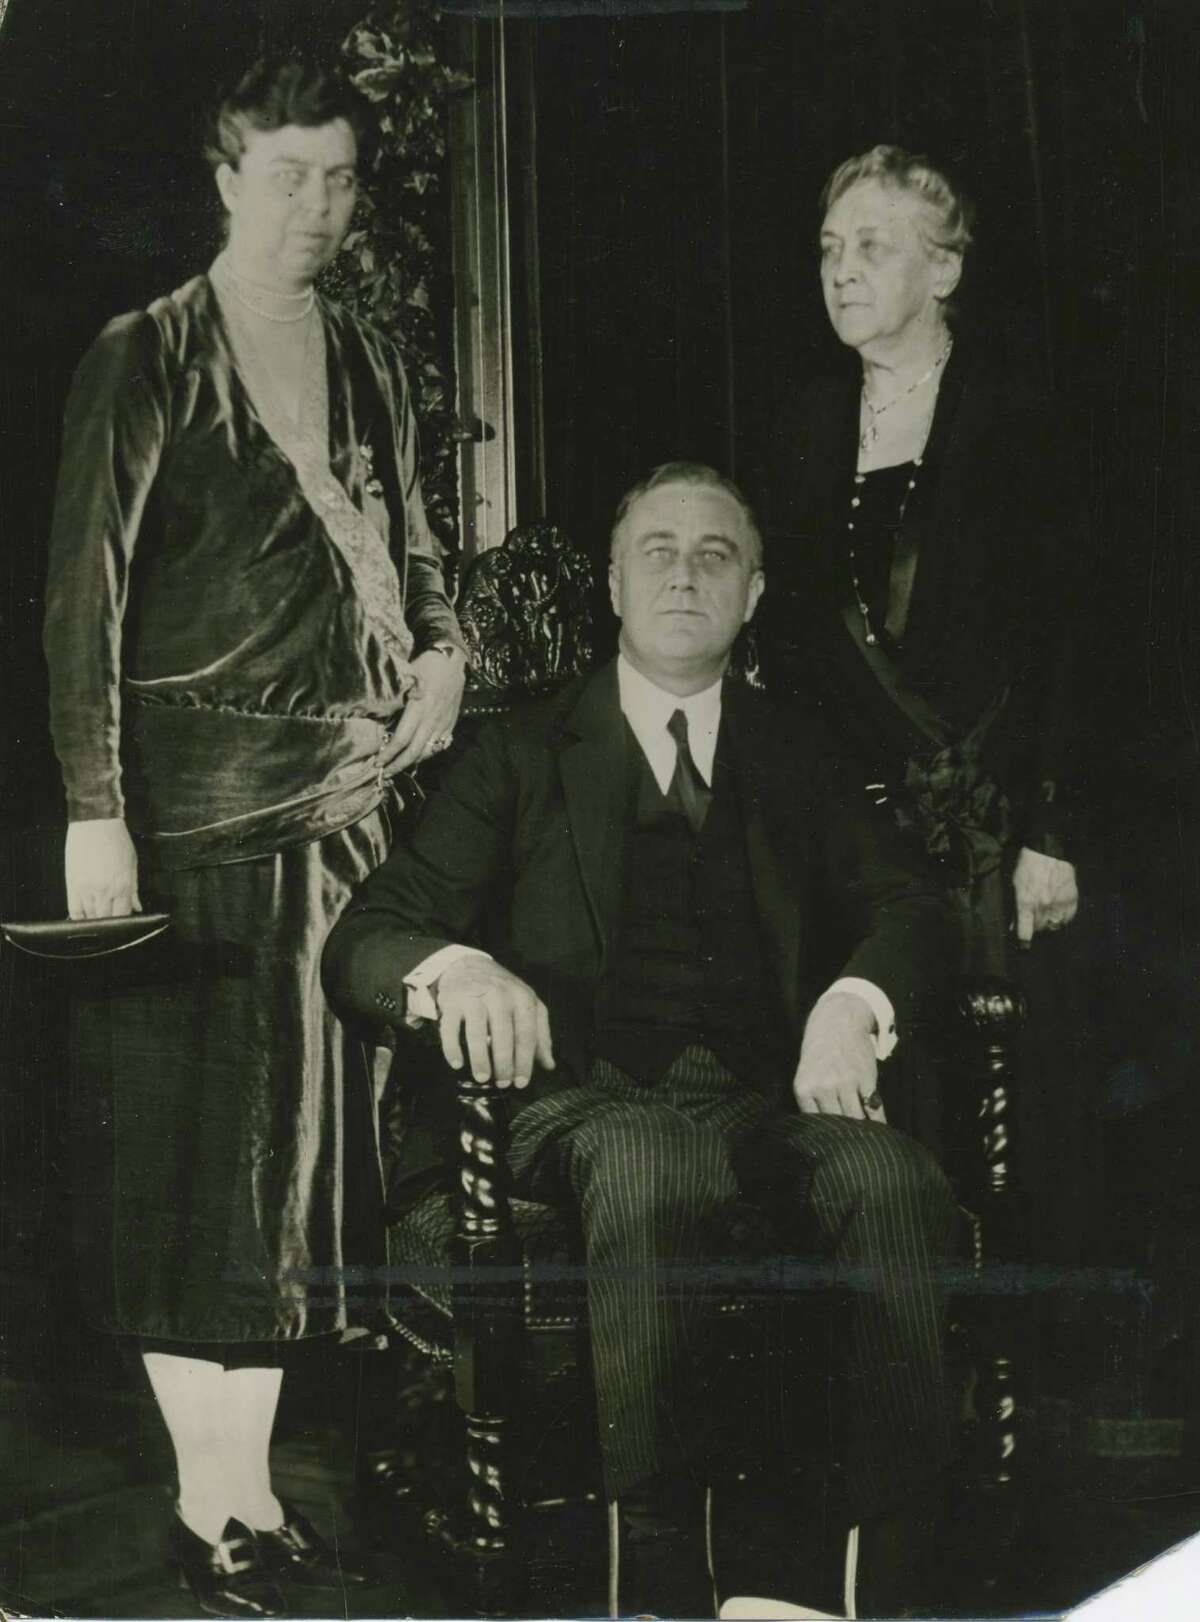 New York Governor Franklin Delano Roosevelt, center, wife, Eleanor Roosevelt, left, and mother, Sara Ann Delano, right, dated Jan. 6, 1930, unknown location. (Times Union archive)